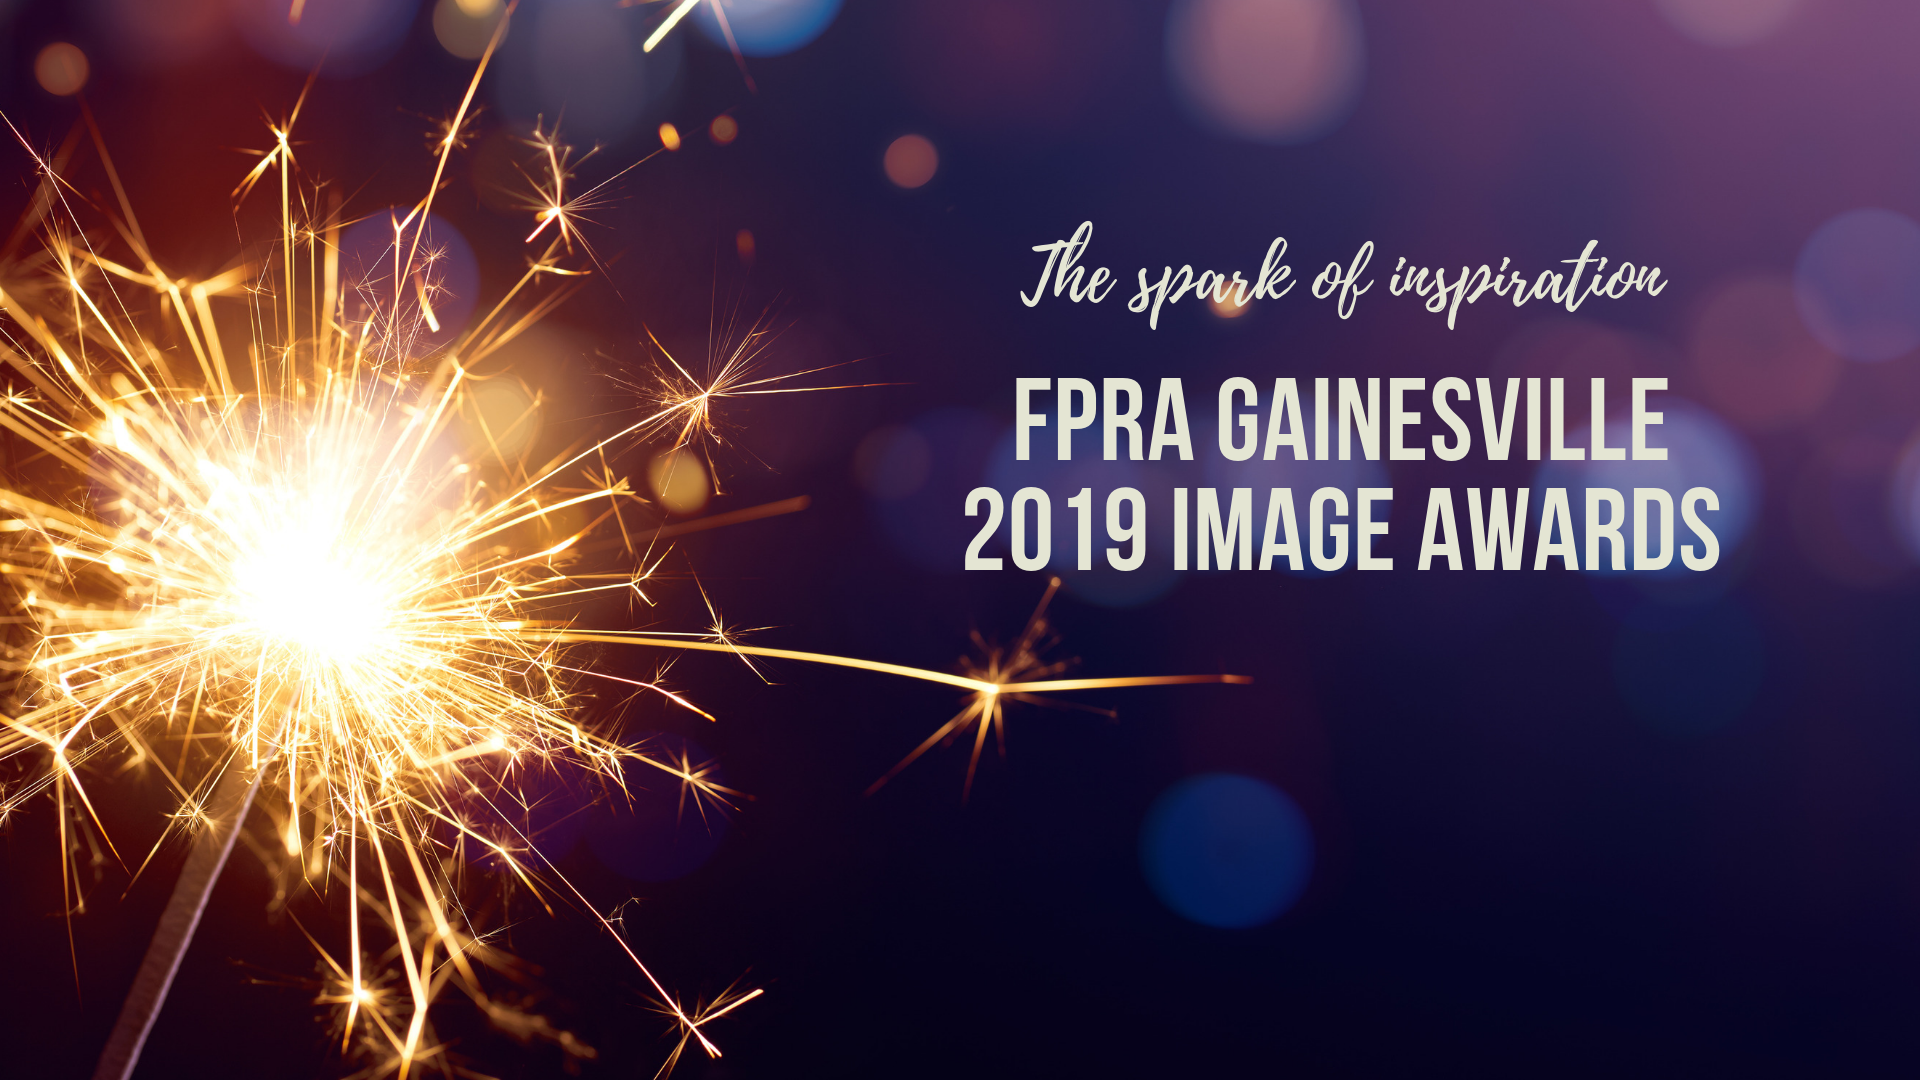 Five Tips on Preparing FPRA Image Award Entries